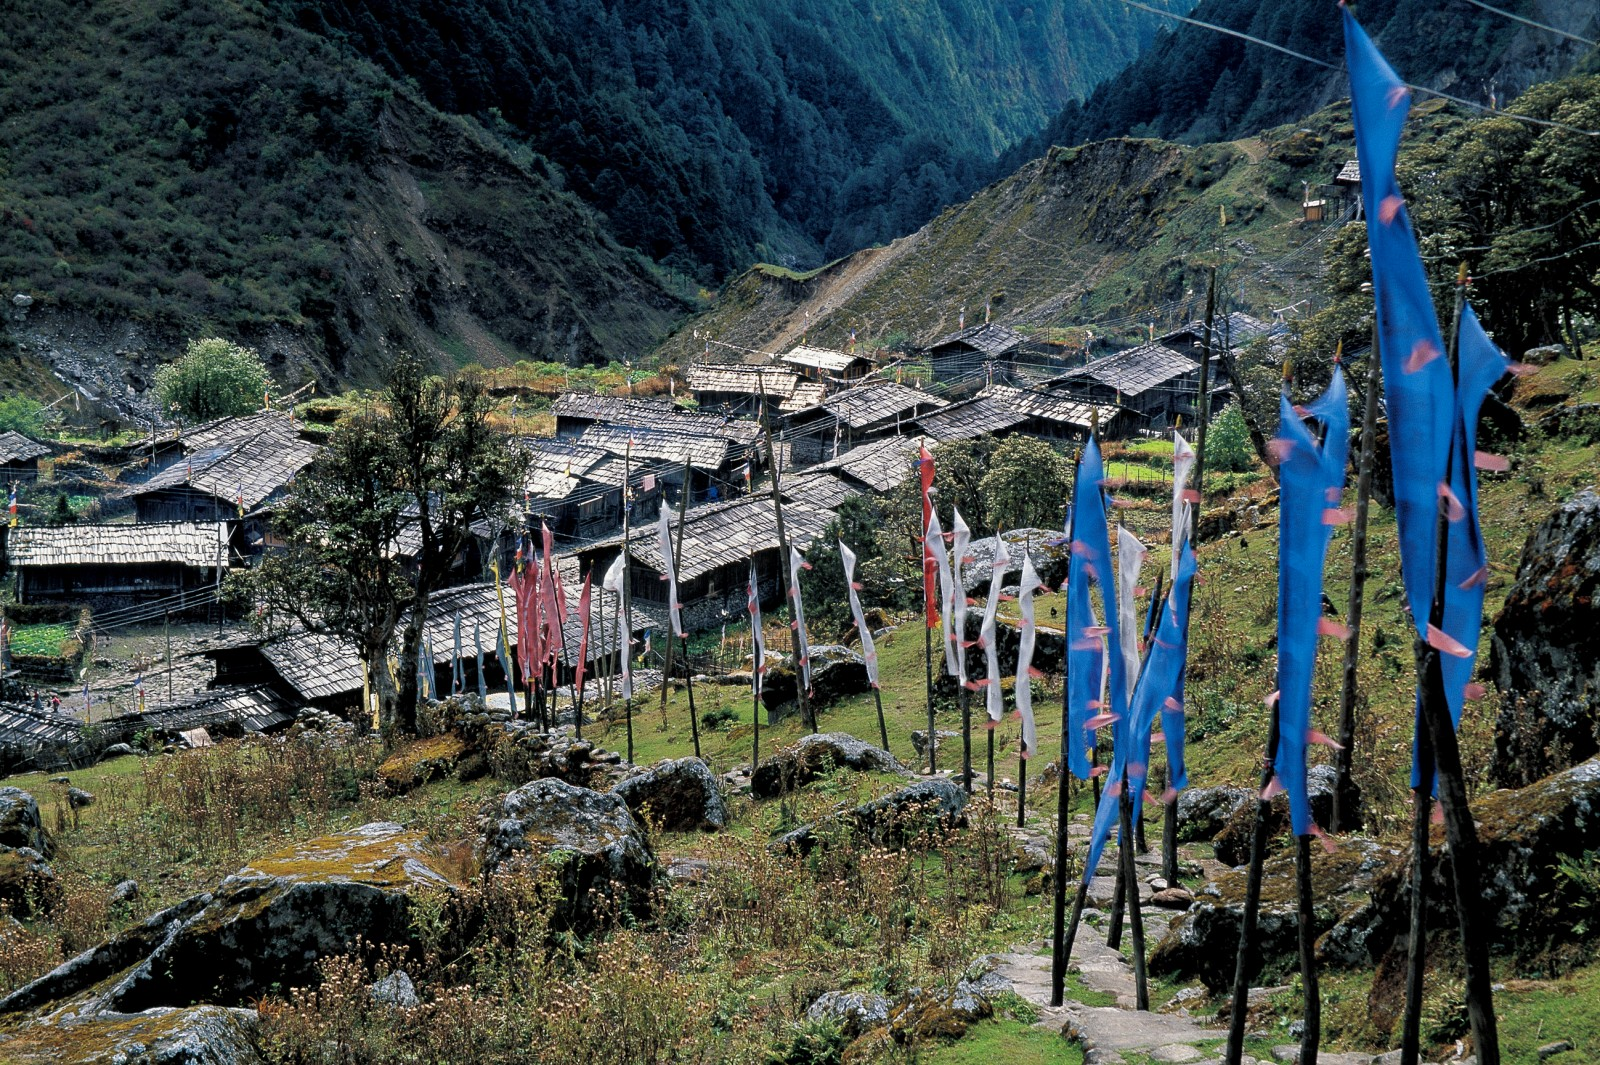 Following his successful climb, Hardie trekked through Nepal visiting remote villages including Olangchunggola by the Tibetan border.